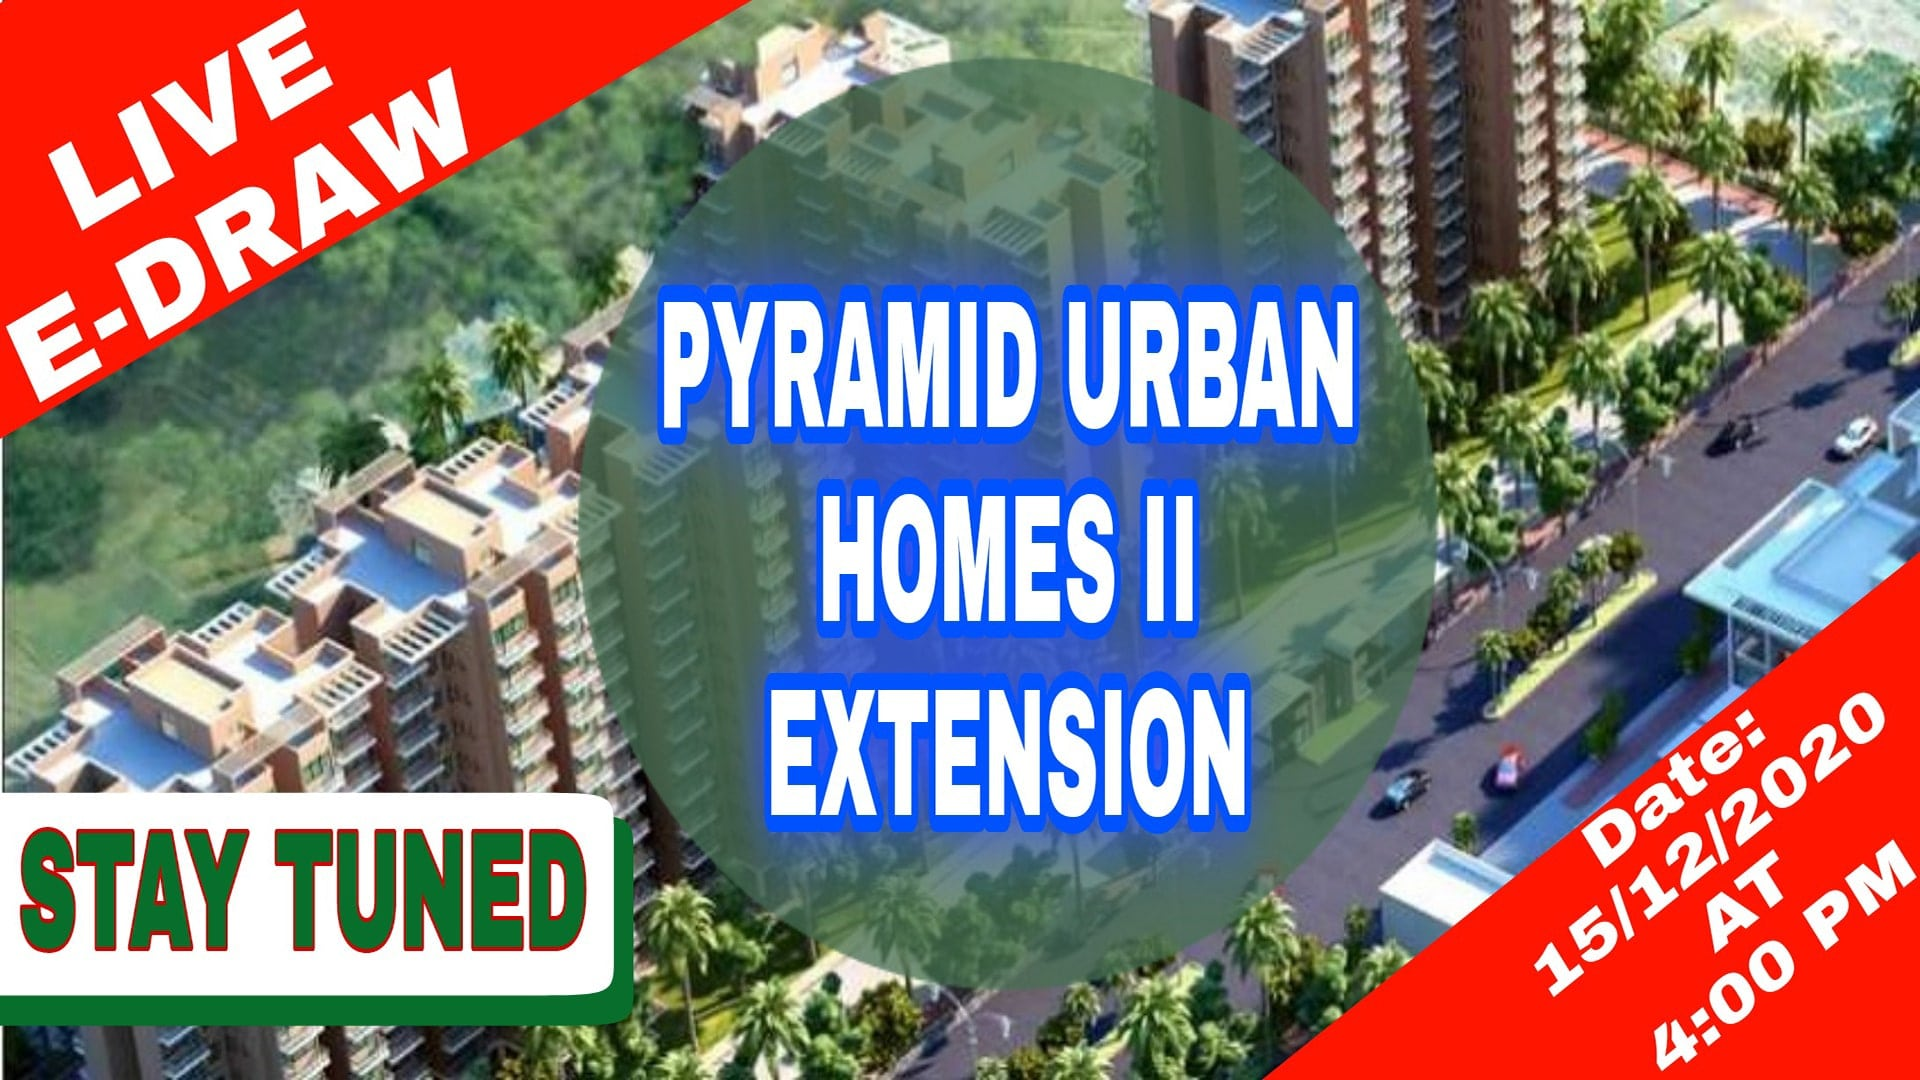 Pyramid Urban Homes(2) Extension Draw